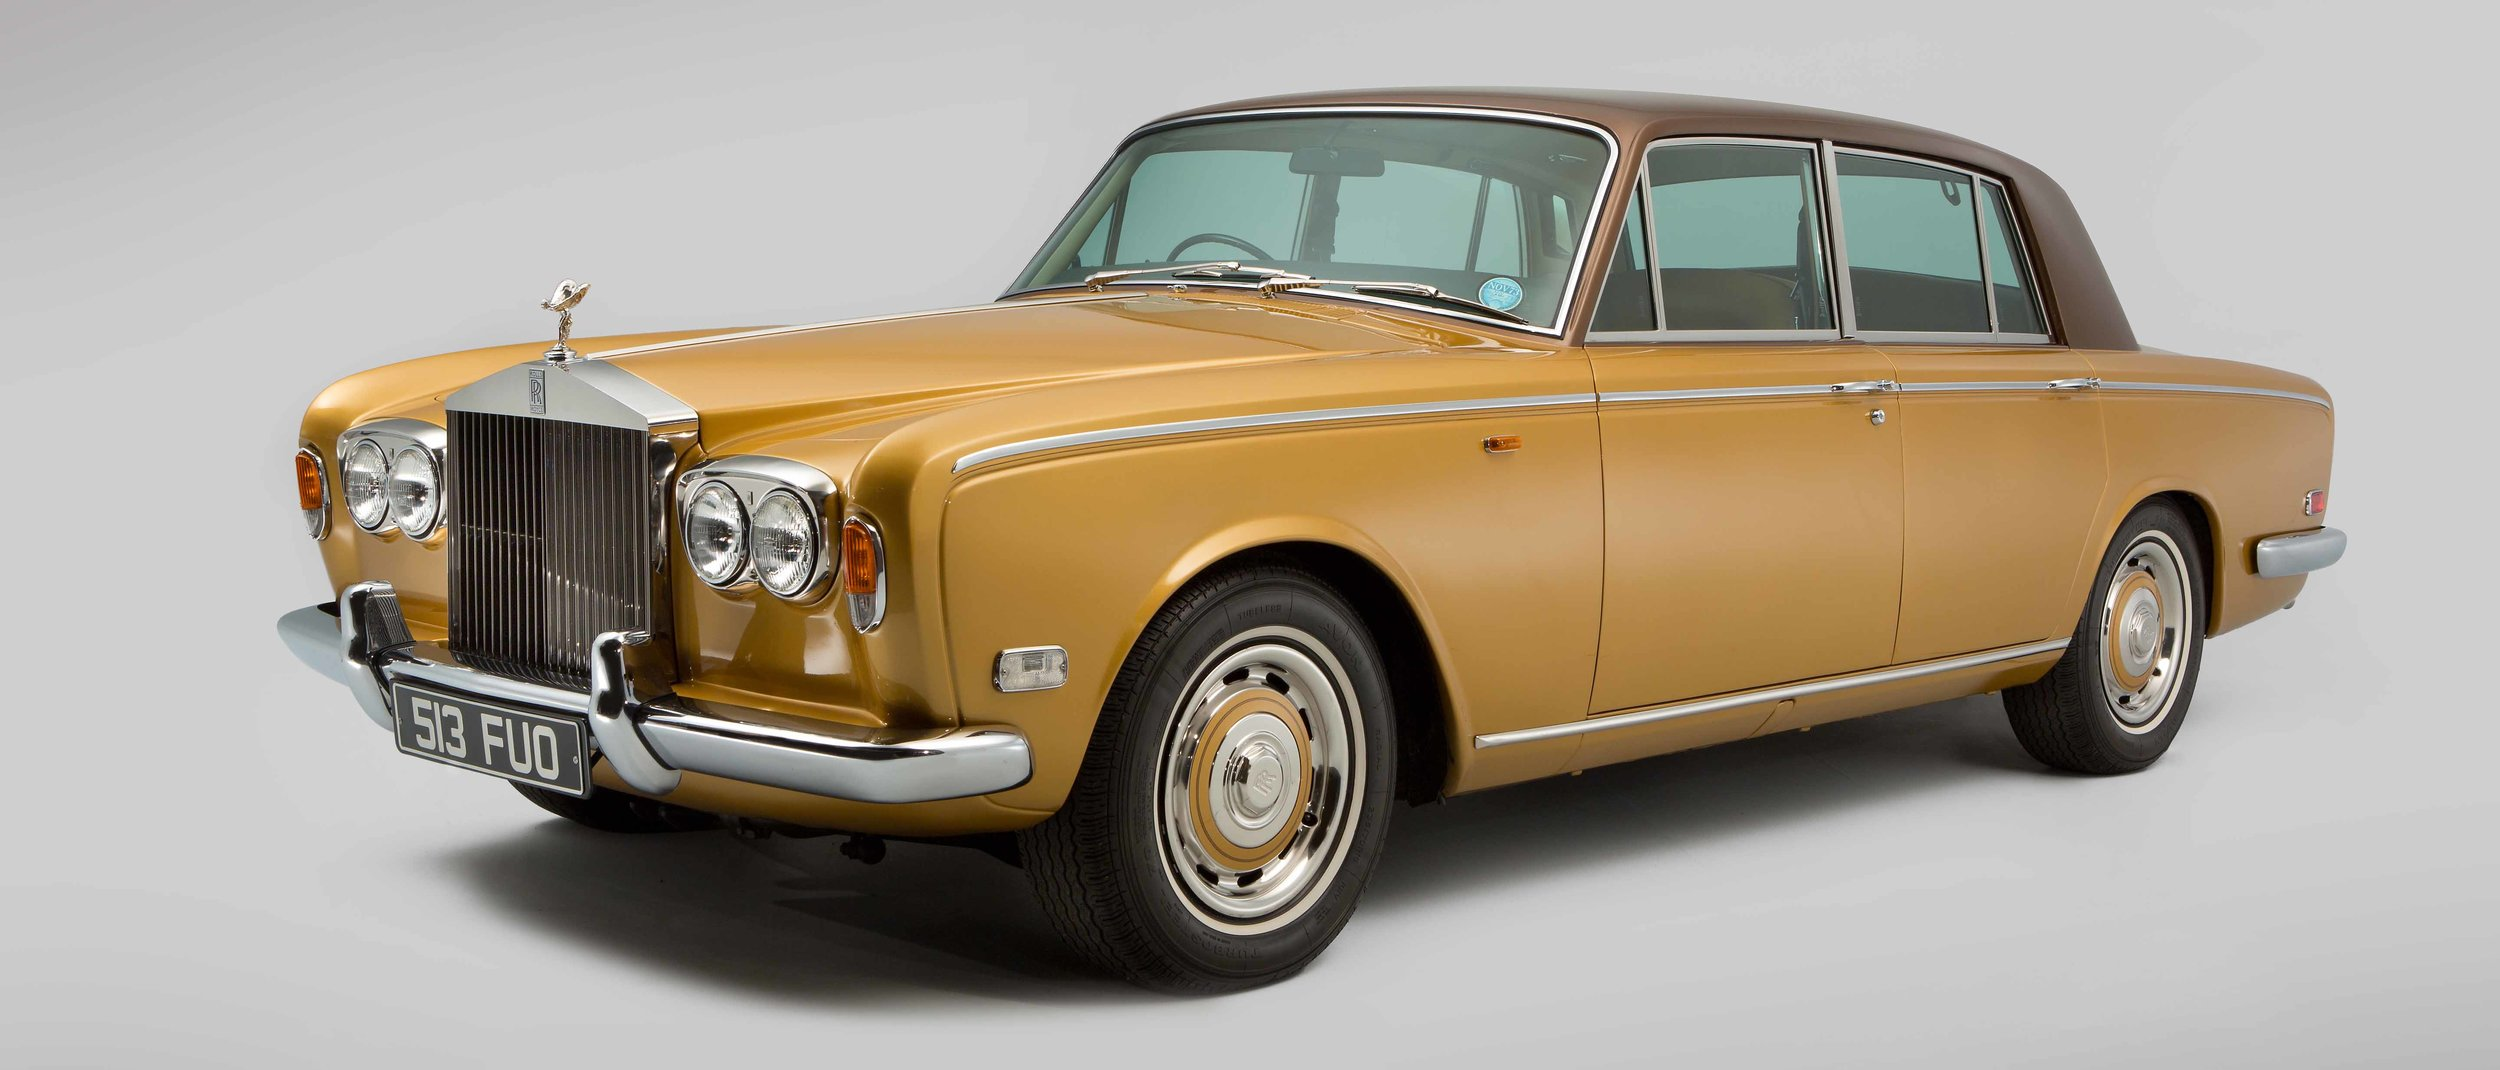 We show you how to buy the very best Rolls Royce Silver Shadow – and how best to look after it once you get it home!